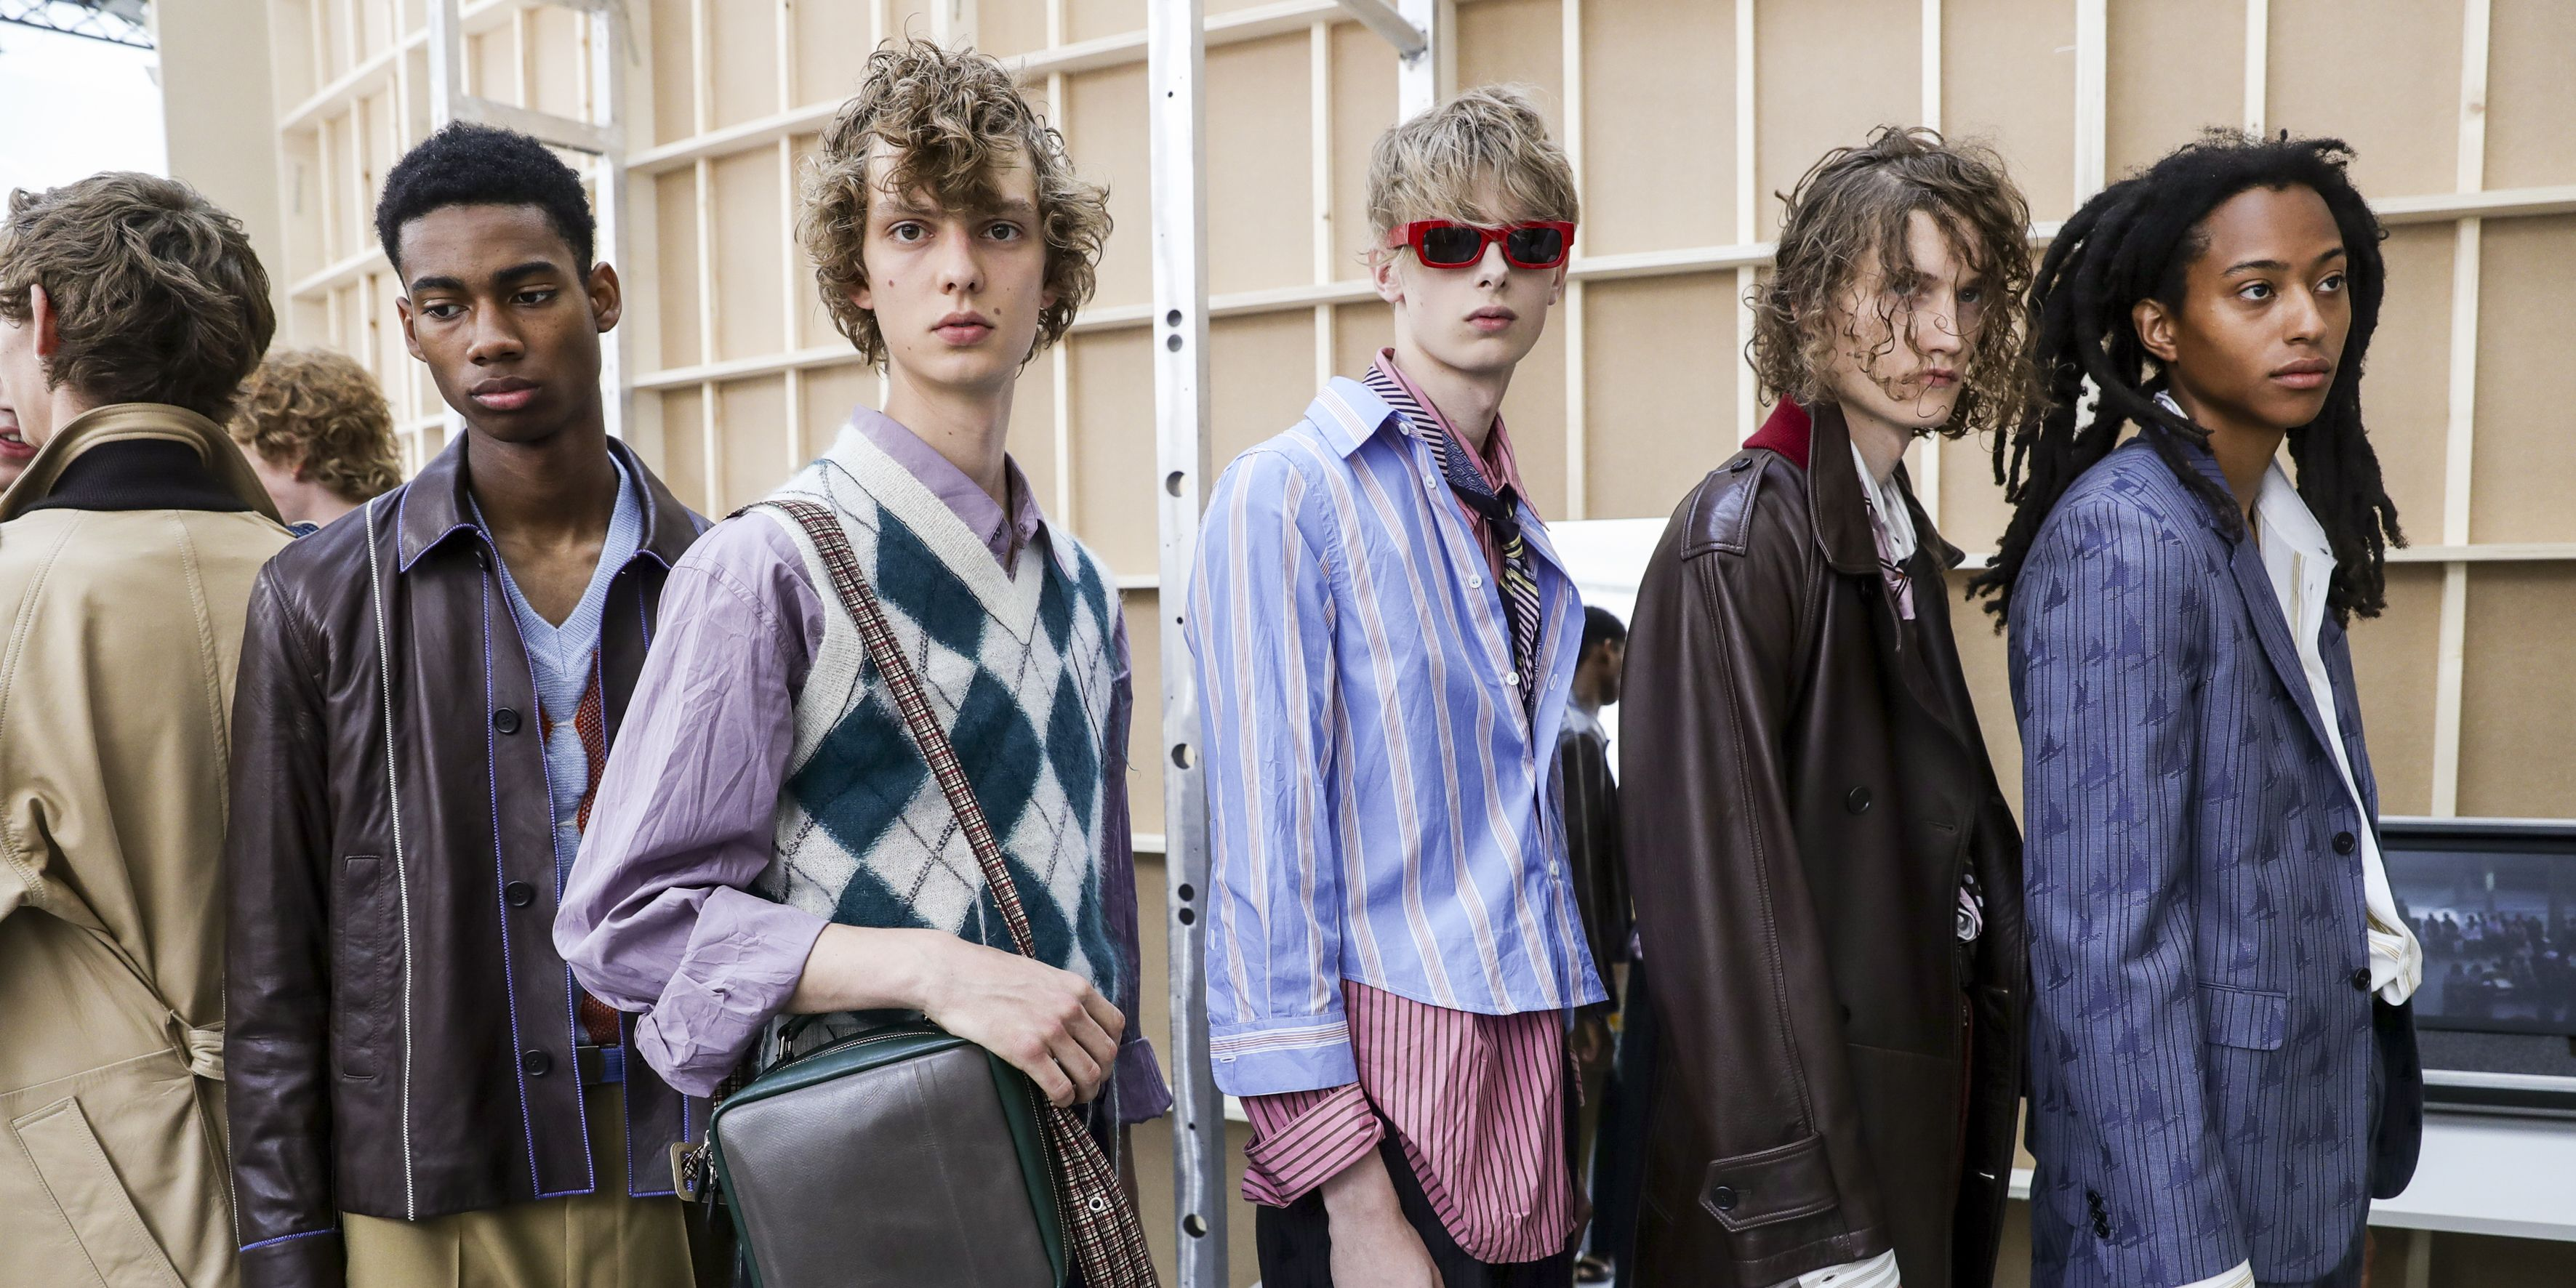 Marni - Backstage - Milan Men's Fashion Week Spring/Summer 2018